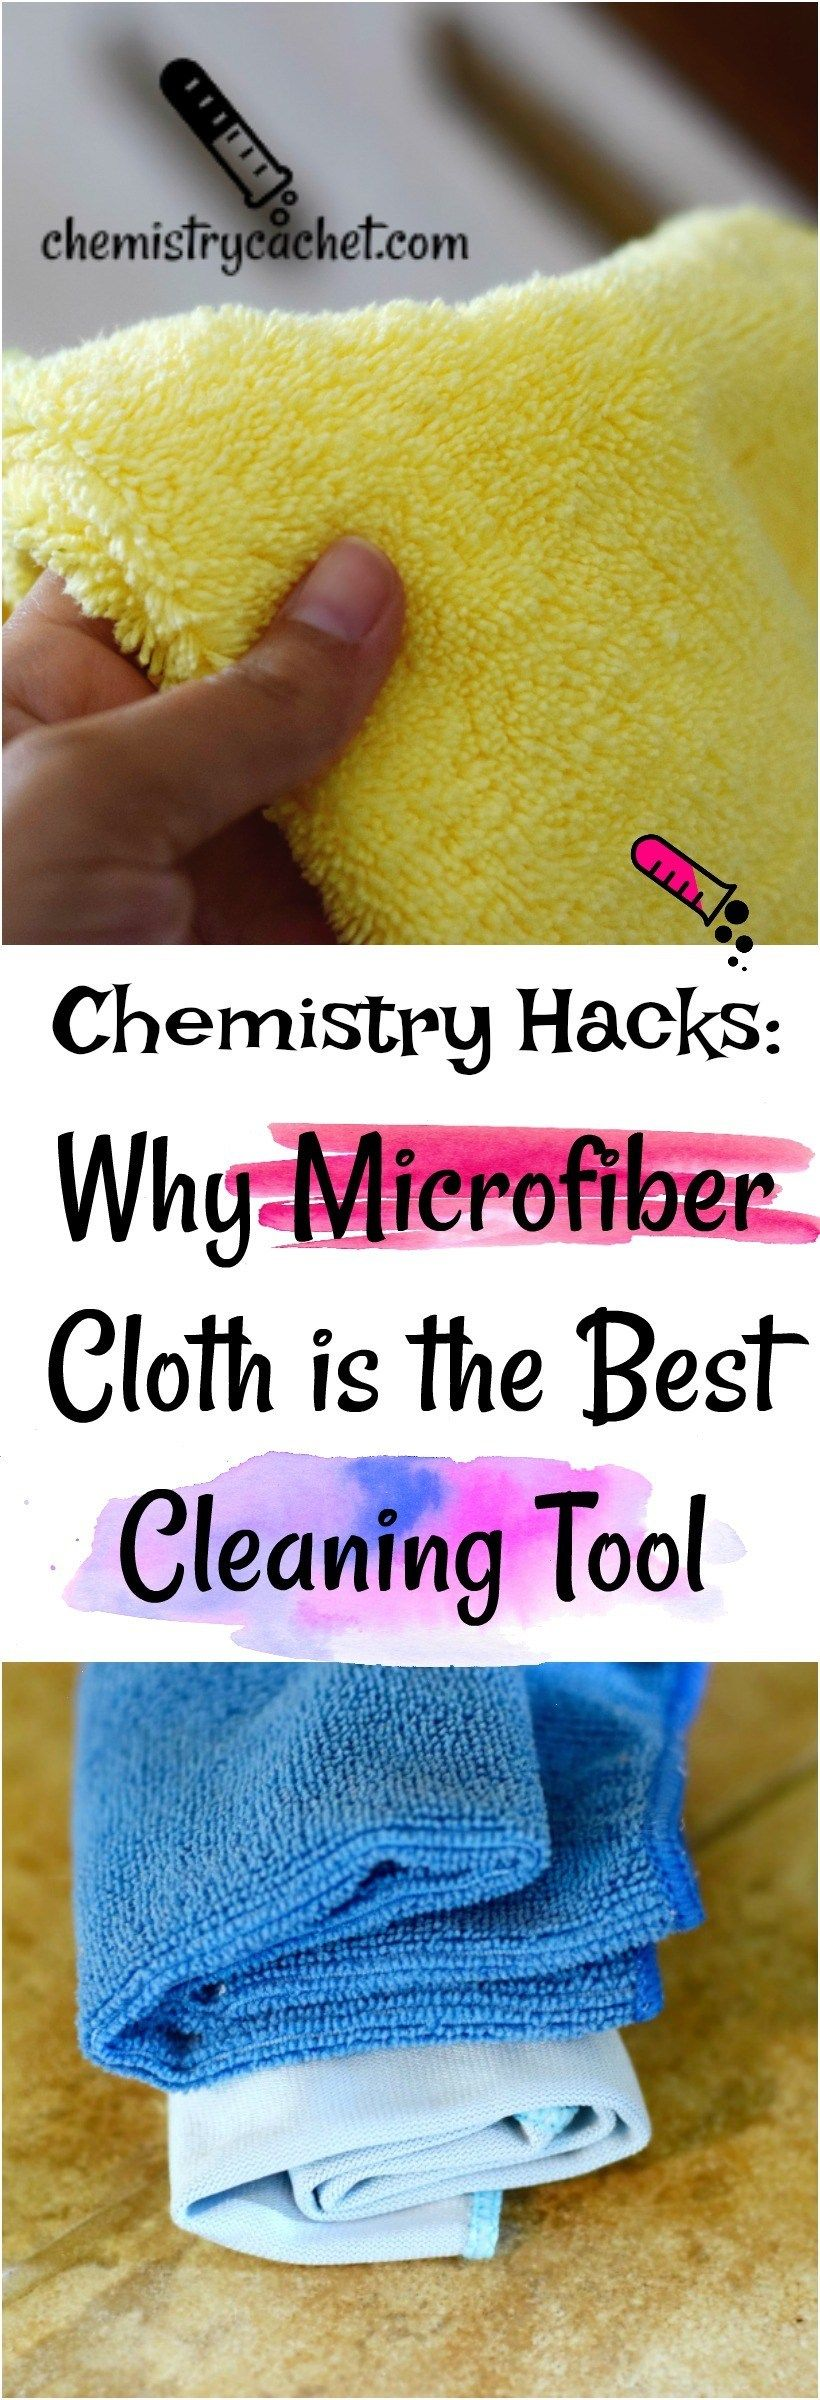 Chemistry Hacks: Why Microfiber Cloth is the Best Cleaning Tool